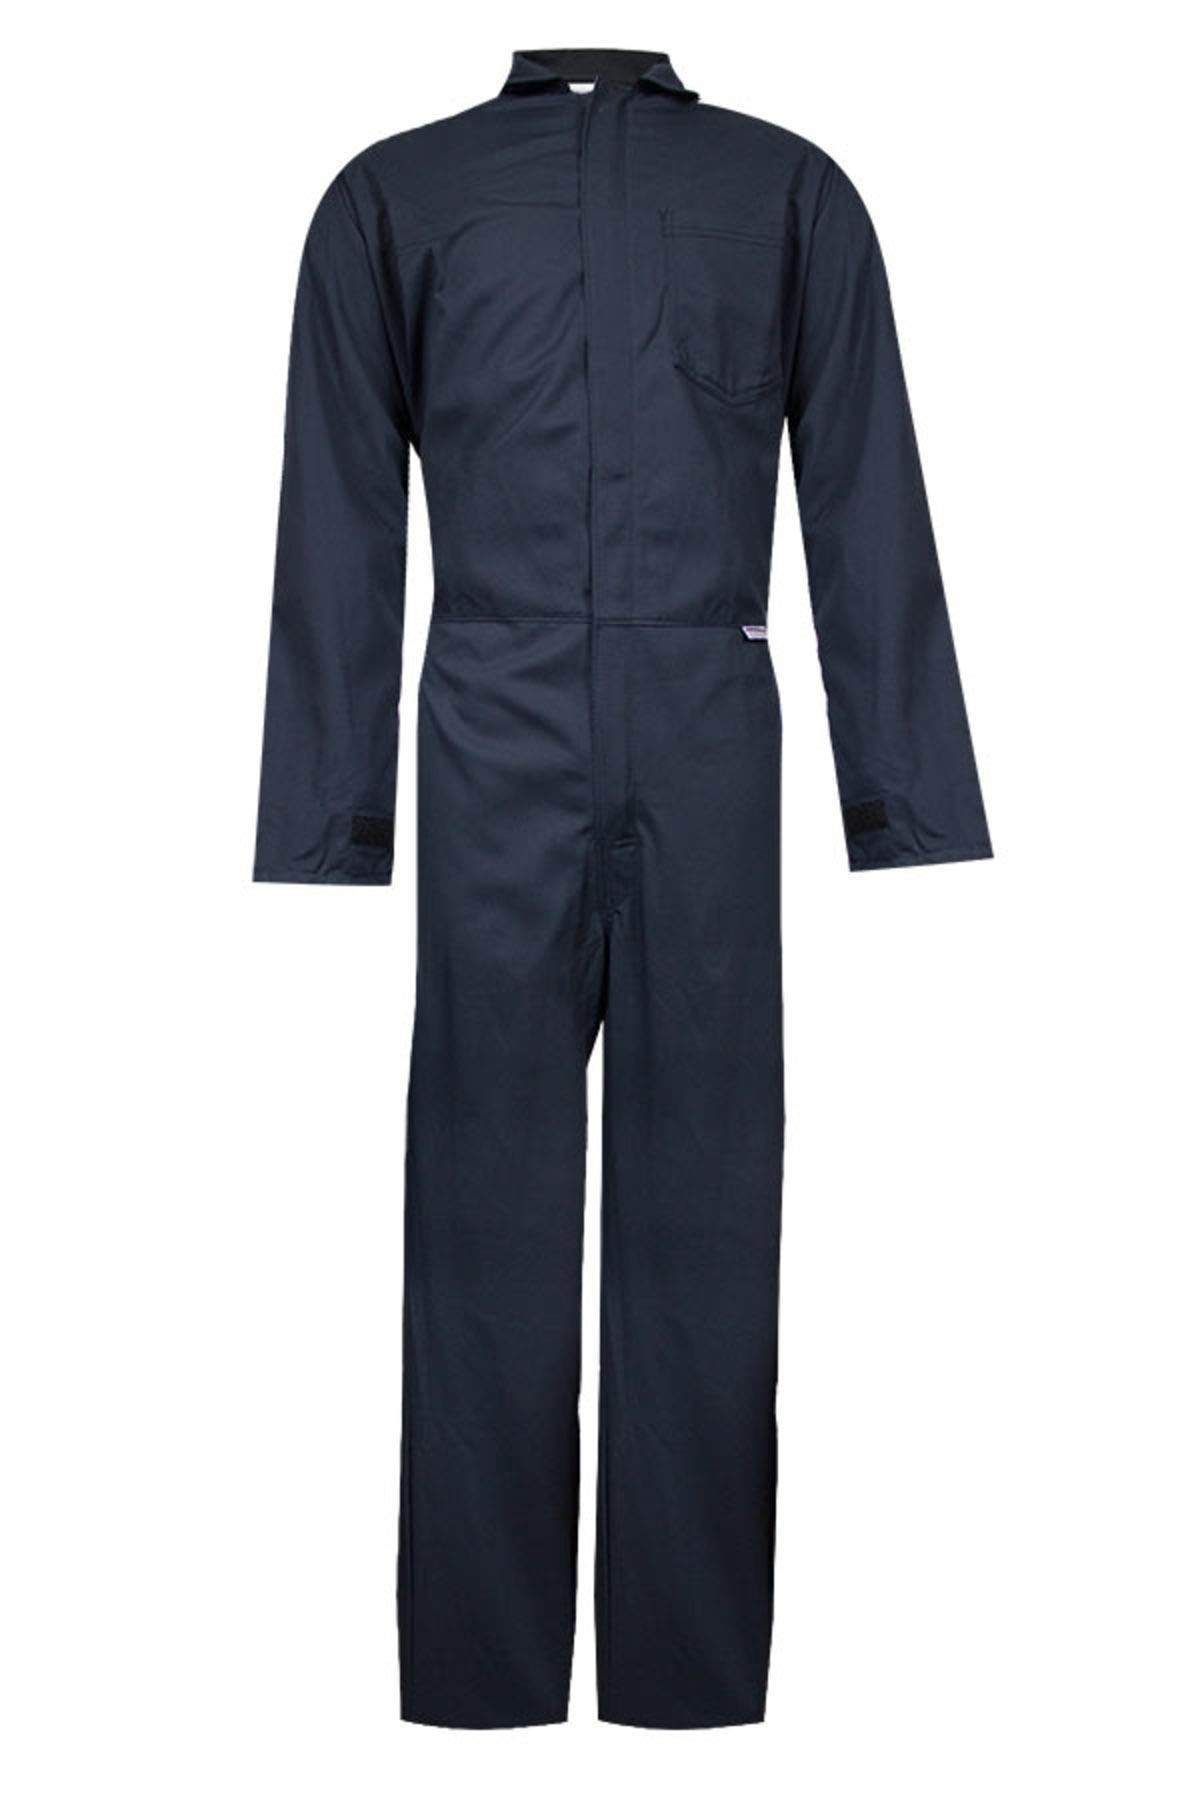 National Safety Apparel C88EJCZMD32 ArcGuard FR UltraSoft Contractor Coverall, Medium, Navy by National Safety Apparel Inc (Image #1)